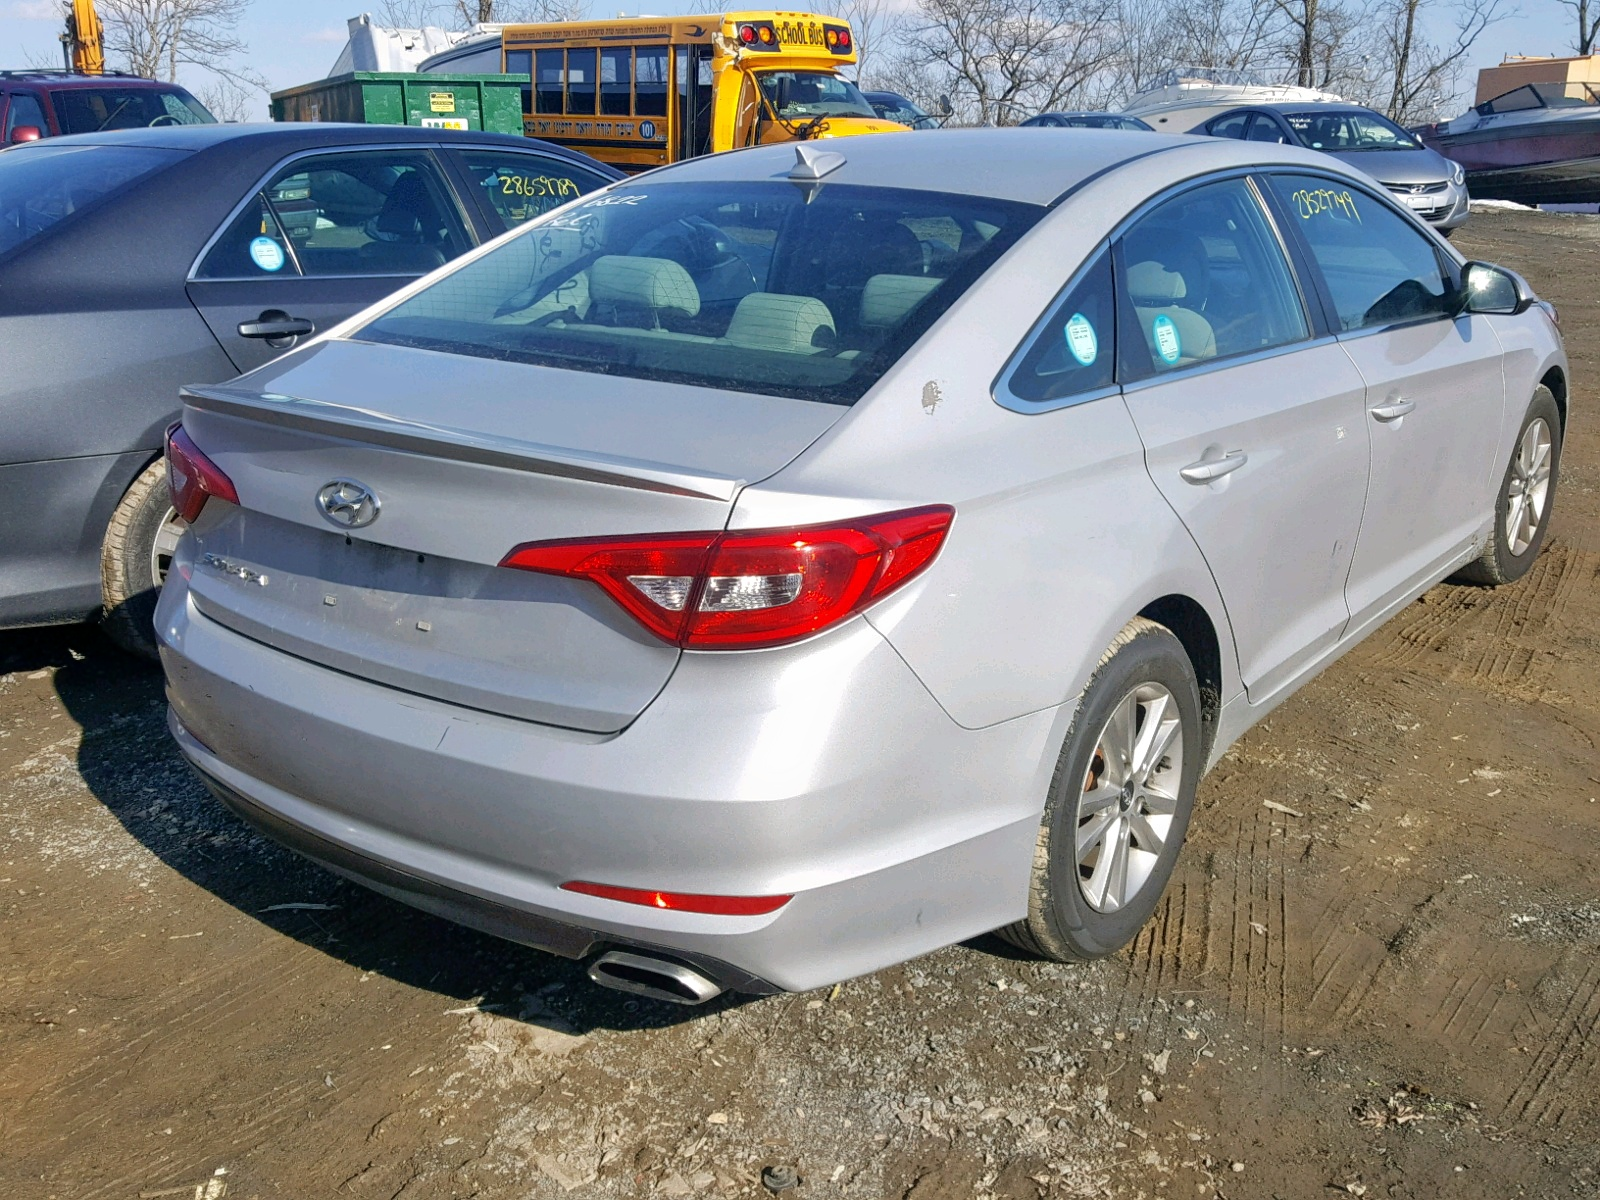 2015 Hyundai Sonata Se 2.4L rear view